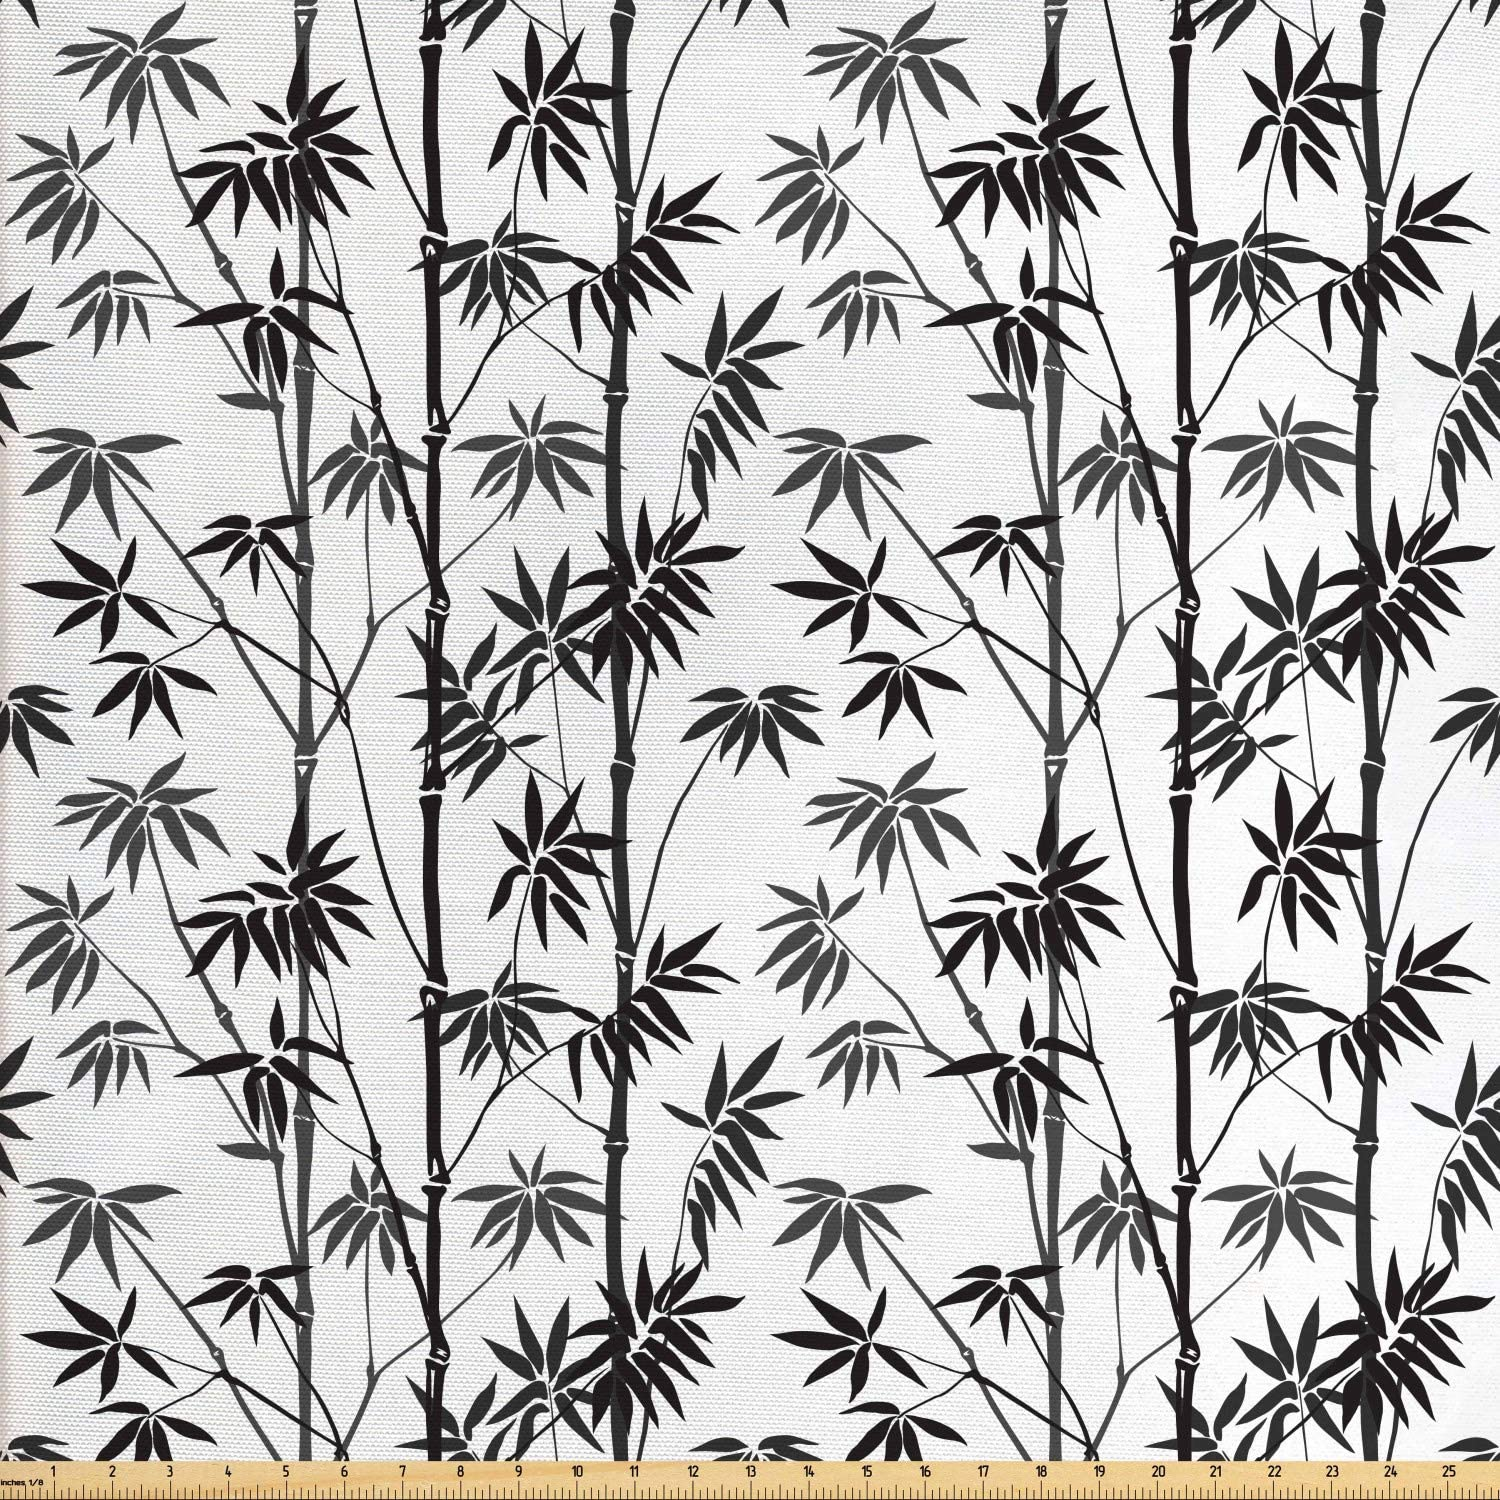 Lunarable Bamboo Fabric by The Yard, Monochrome Exotic Trees Pattern Flora Garden Japanese Nature, Decorative Fabric for Upholstery and Home Accents, 2 Yards, Black White